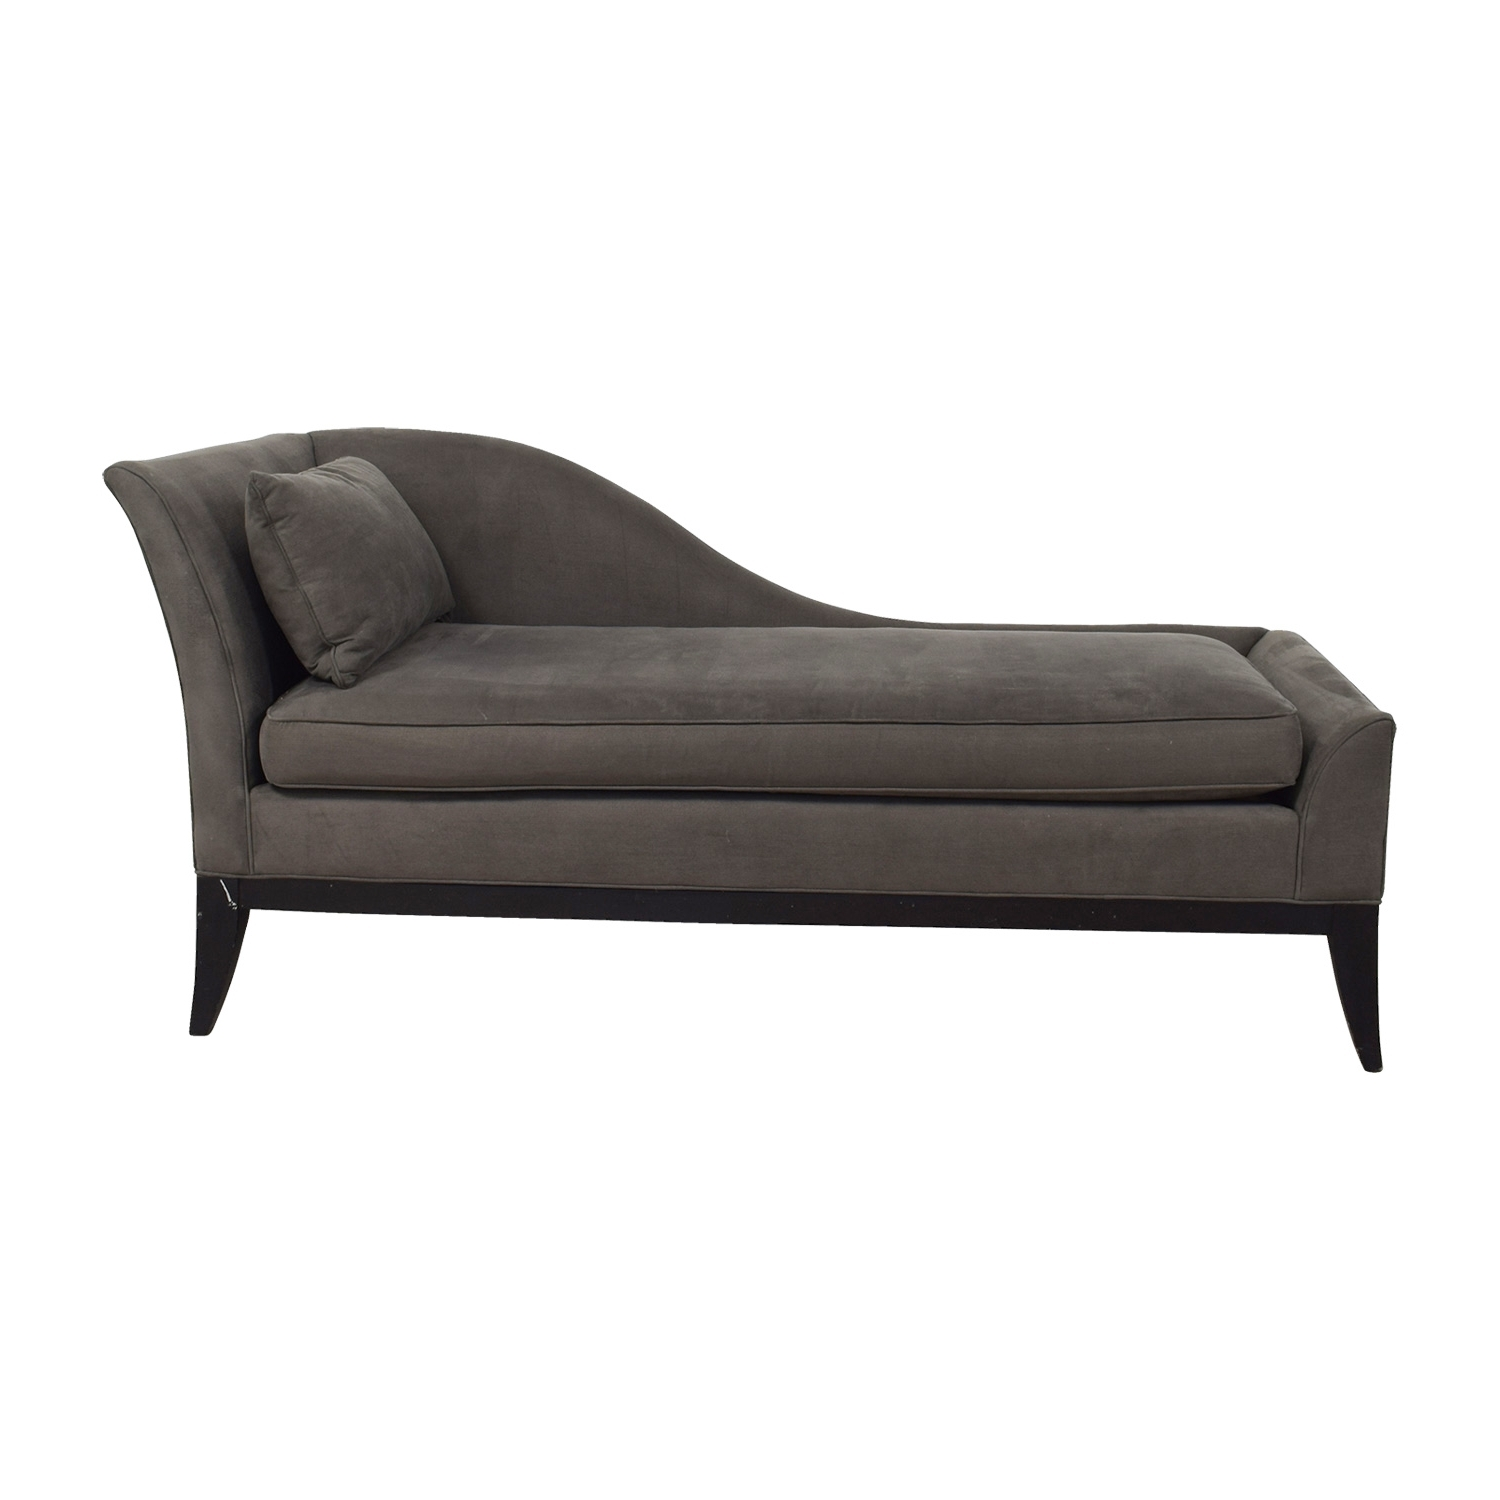 [%78% Off – Grey Chaise Lounge / Sofas In Fashionable Grey Chaises|Grey Chaises Inside Most Recently Released 78% Off – Grey Chaise Lounge / Sofas|Most Popular Grey Chaises Inside 78% Off – Grey Chaise Lounge / Sofas|Most Recently Released 78% Off – Grey Chaise Lounge / Sofas Regarding Grey Chaises%] (View 6 of 15)